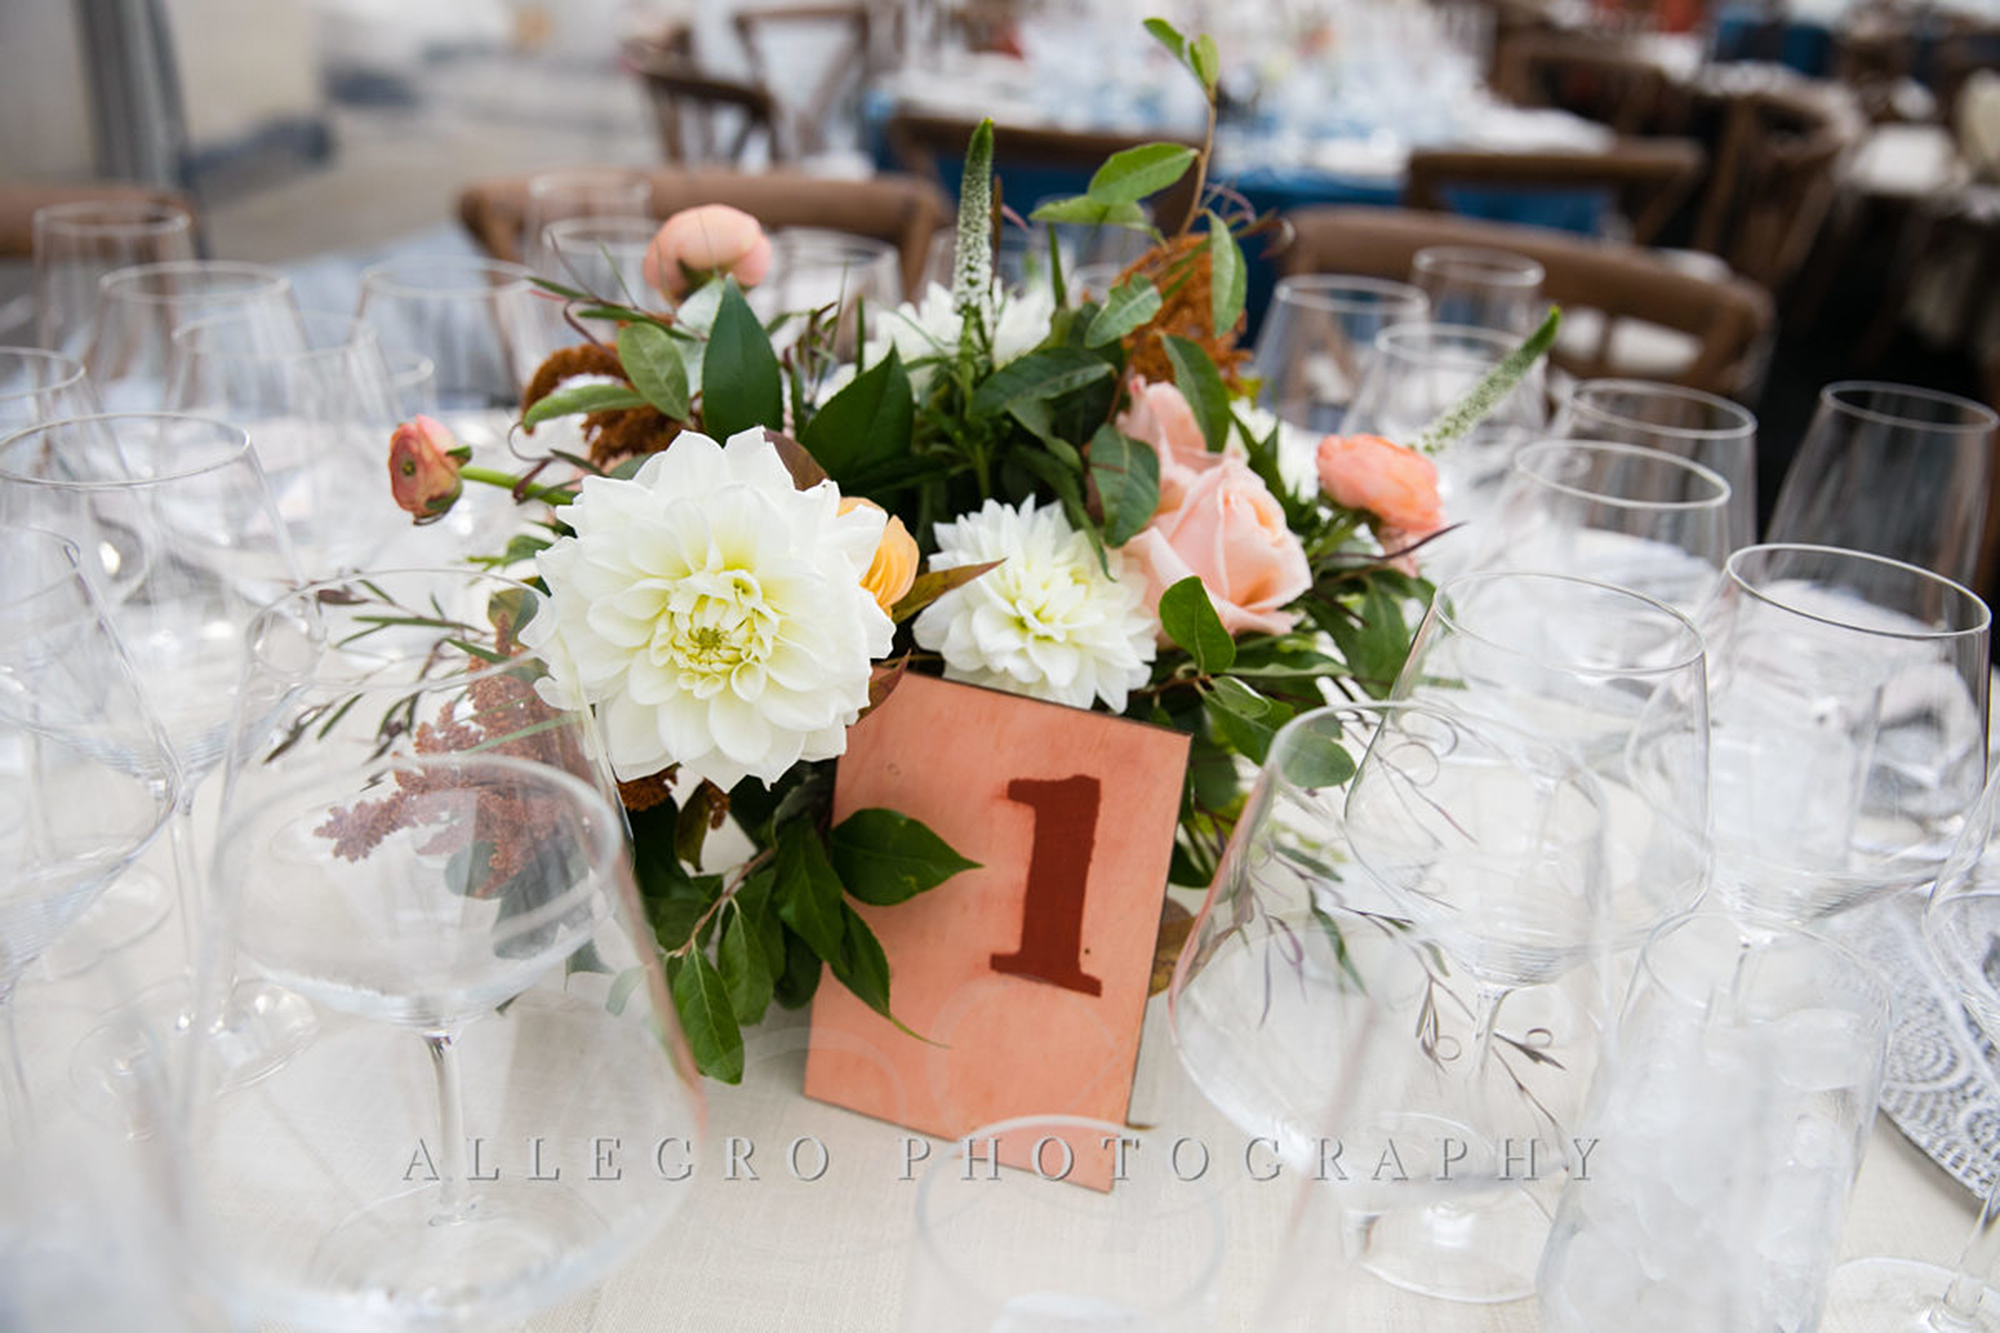 03_Corporate Client Appreciation Room Floral Decor_AE Events.jpg